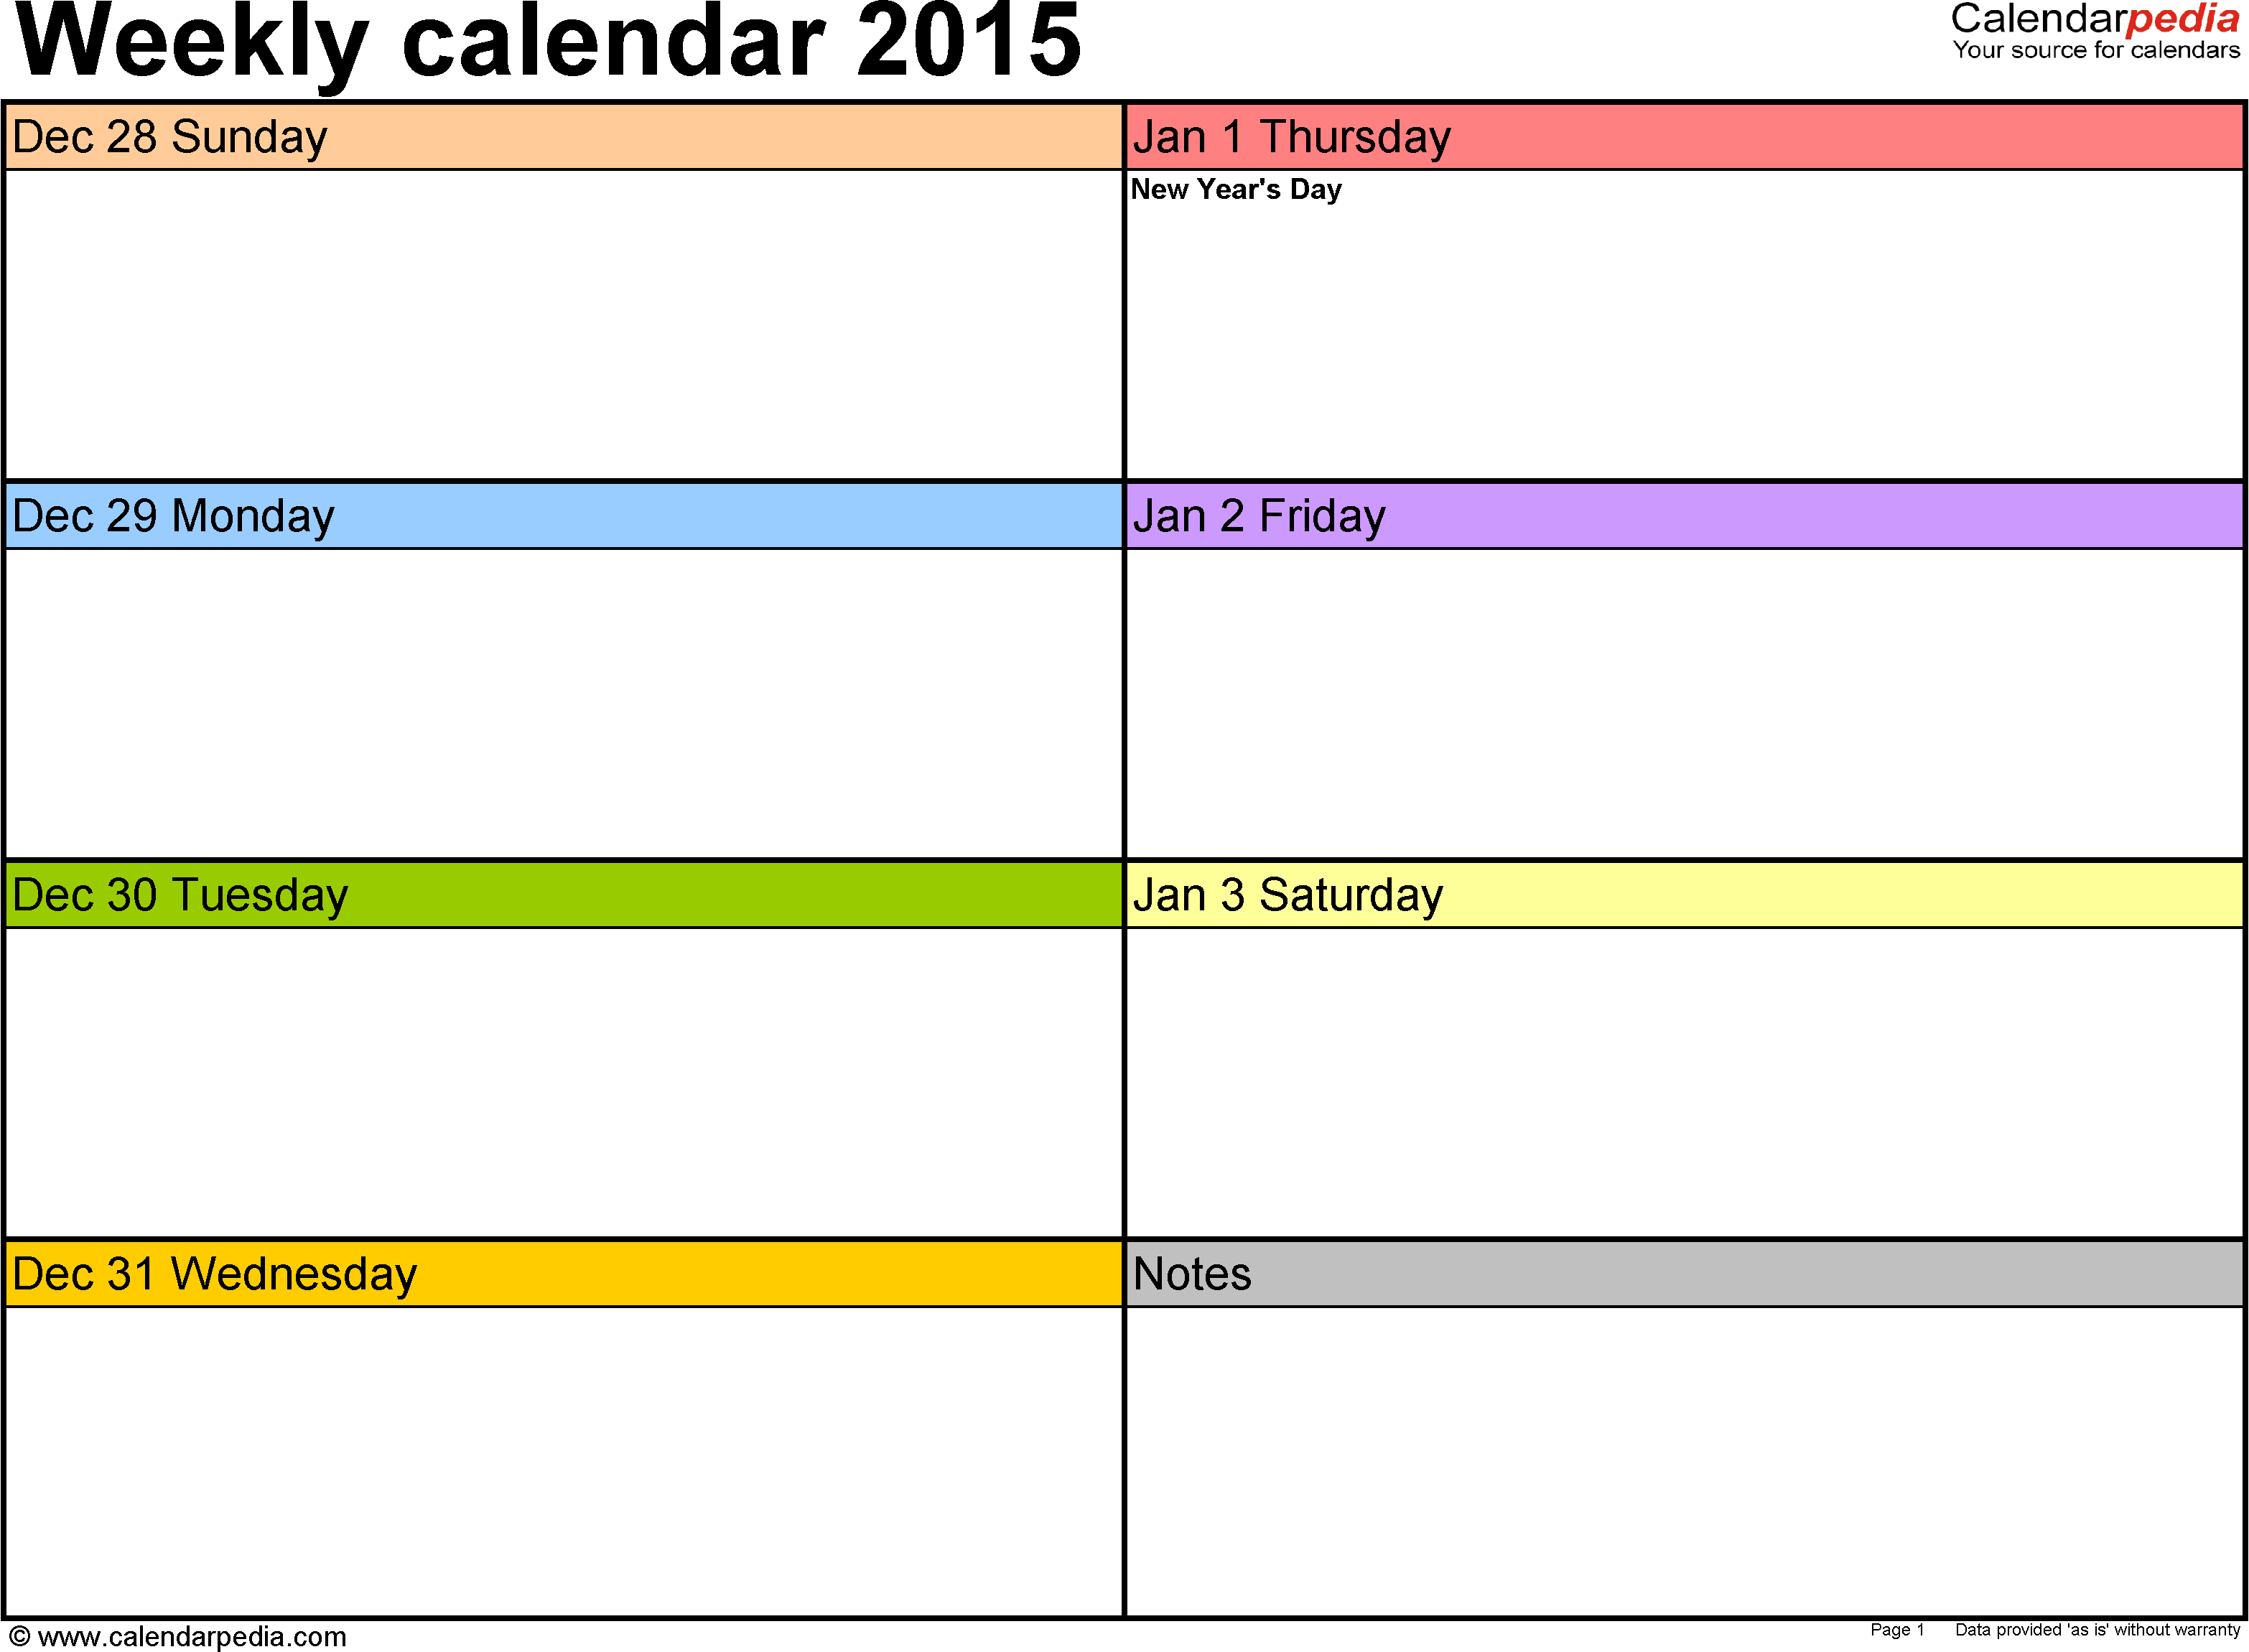 graphic regarding Appointment Calendars Printable identified as Weekly calendar 2015 for PDF - 12 cost-free printable templates